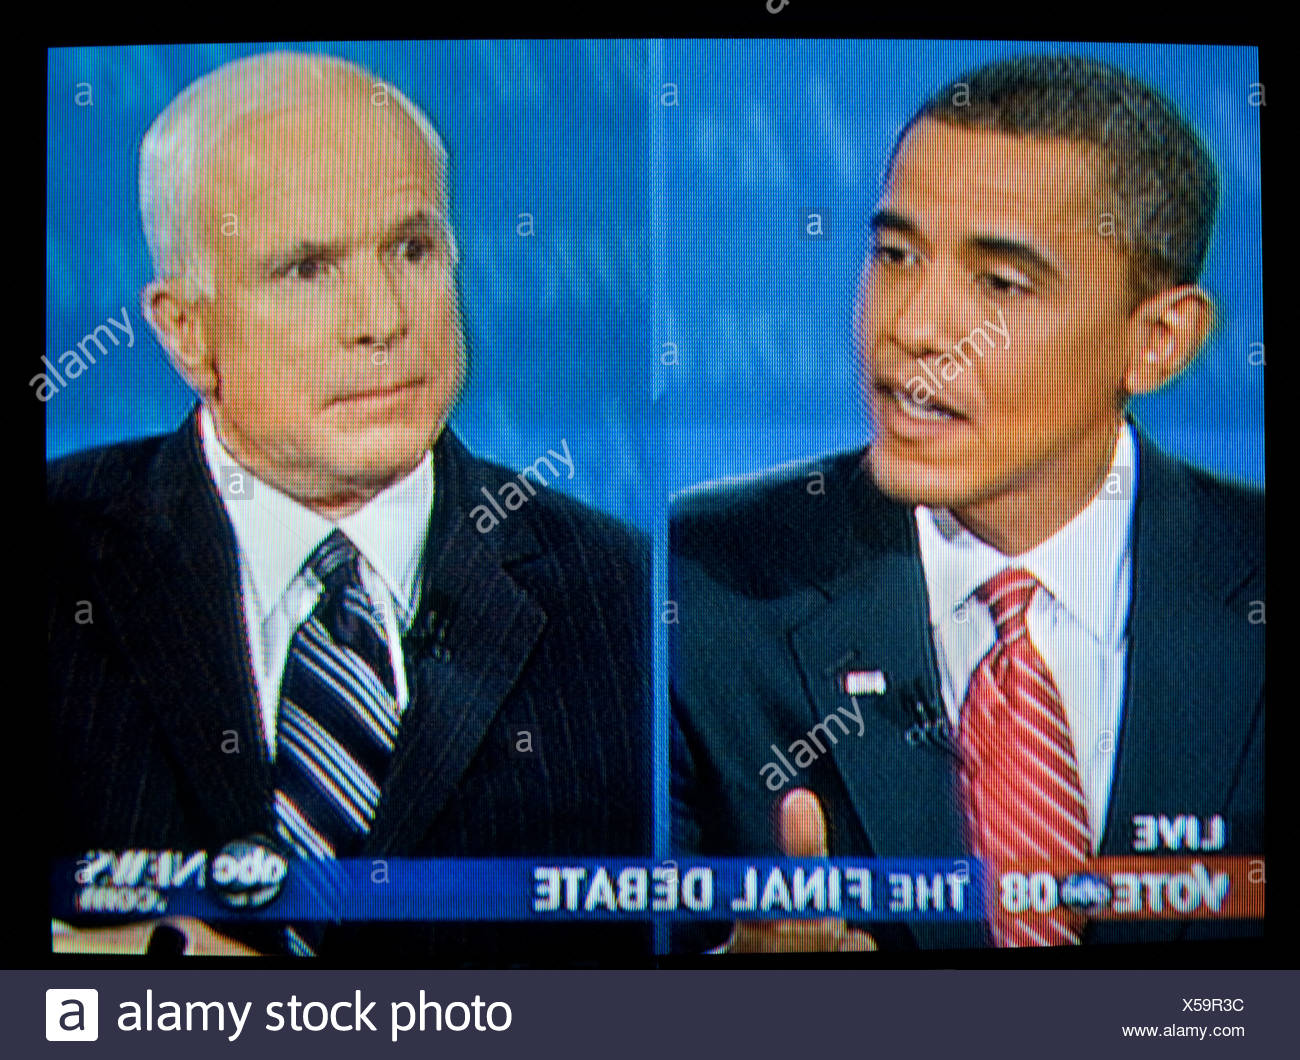 Presidential Candidates John McCain and Barack Obama during the final debate of the 2008 presidential election. - Stock Image